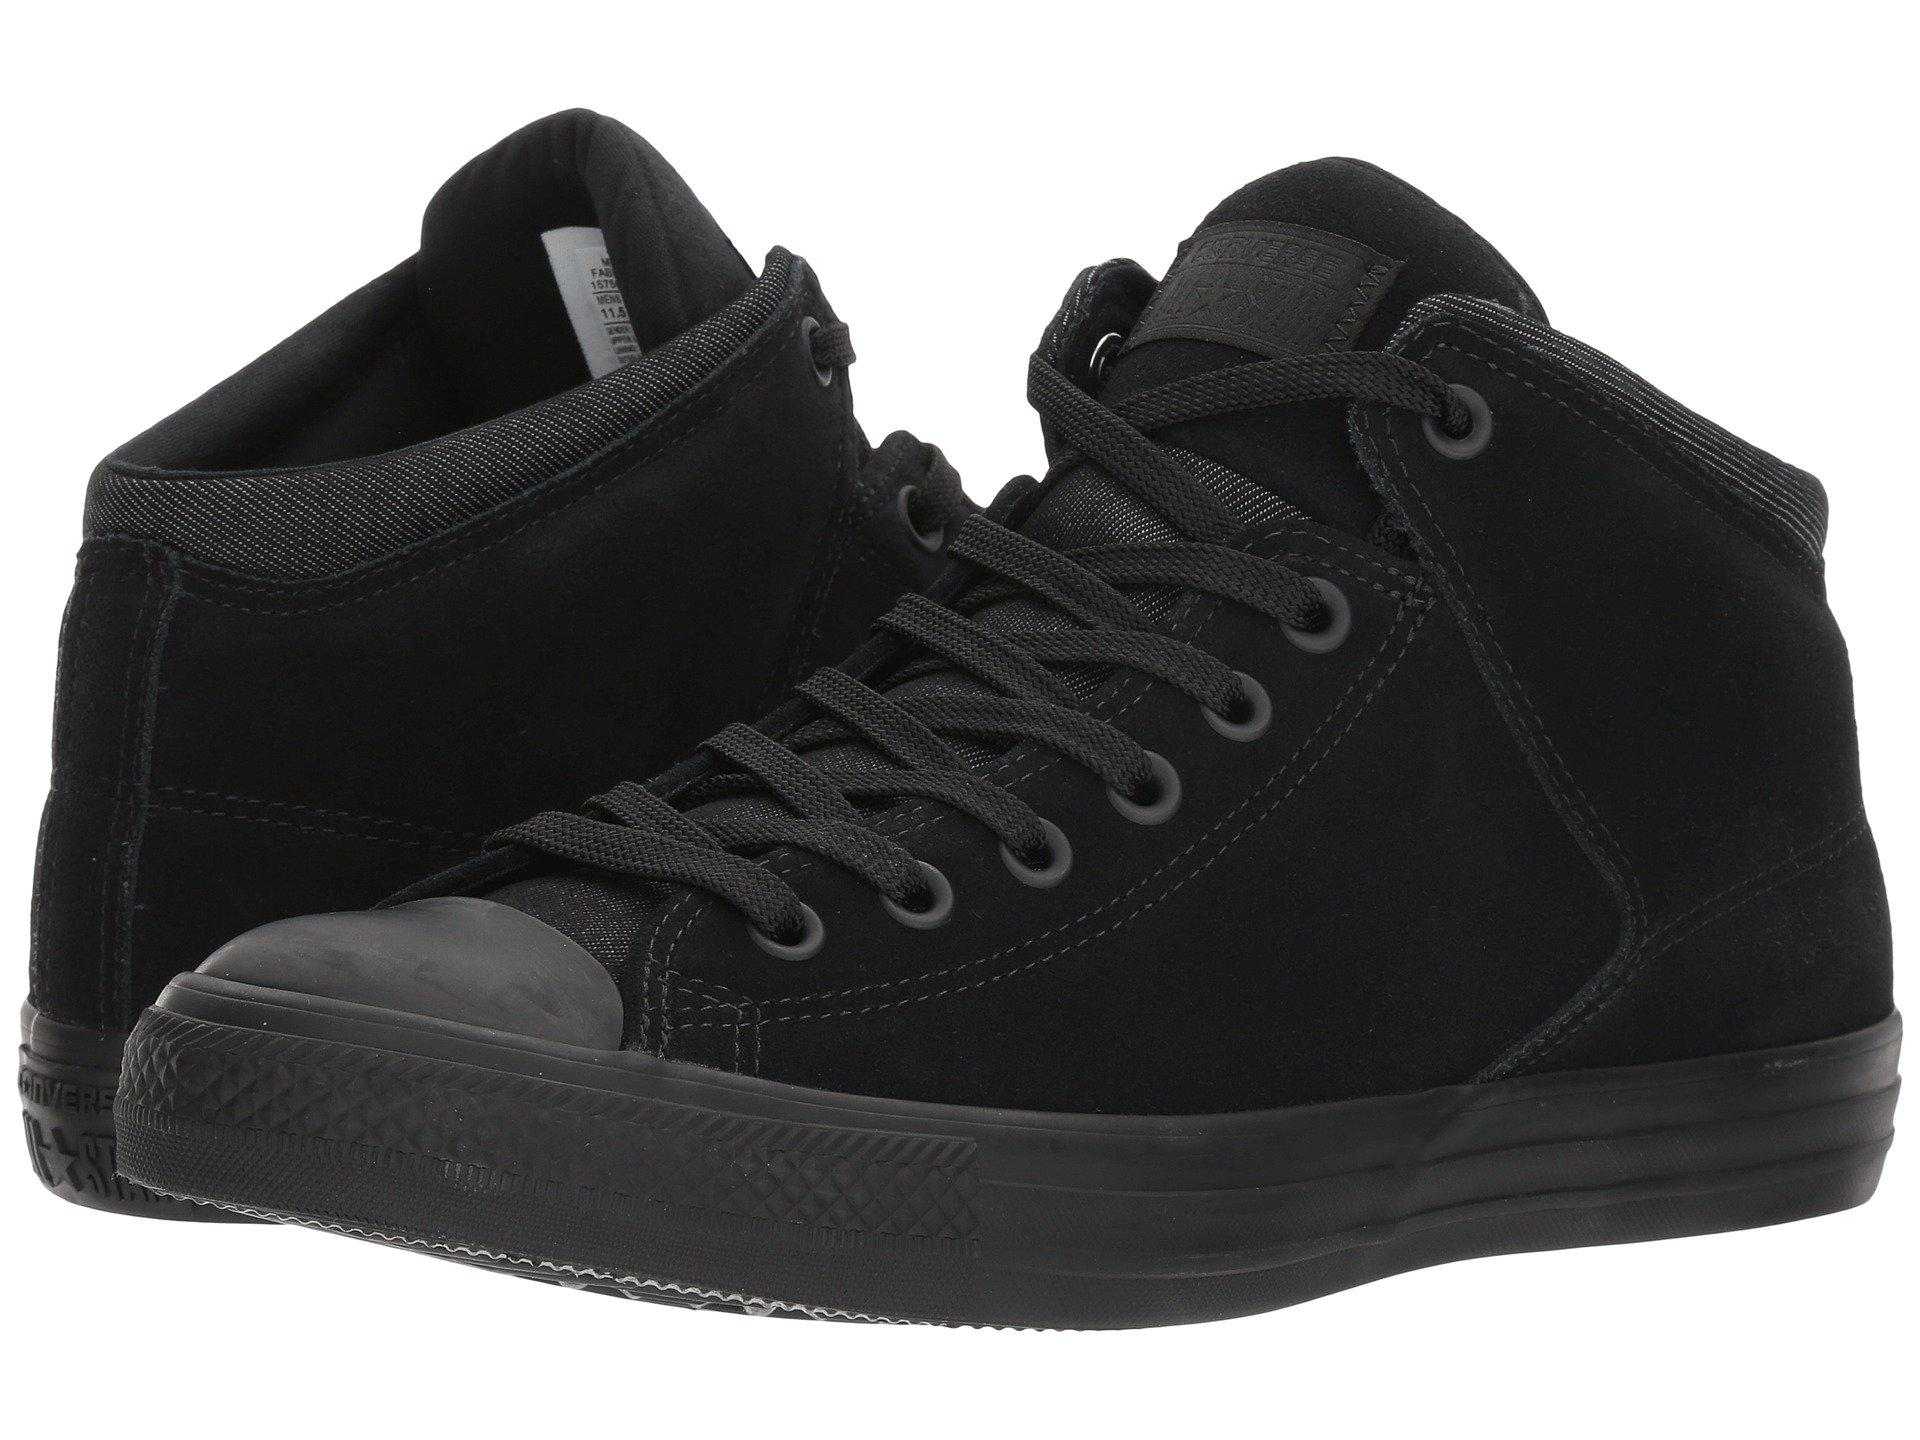 Lyst - Converse Chuck Taylor® All Star® High Street Thermal Suede Hi ... 2412cd8e9